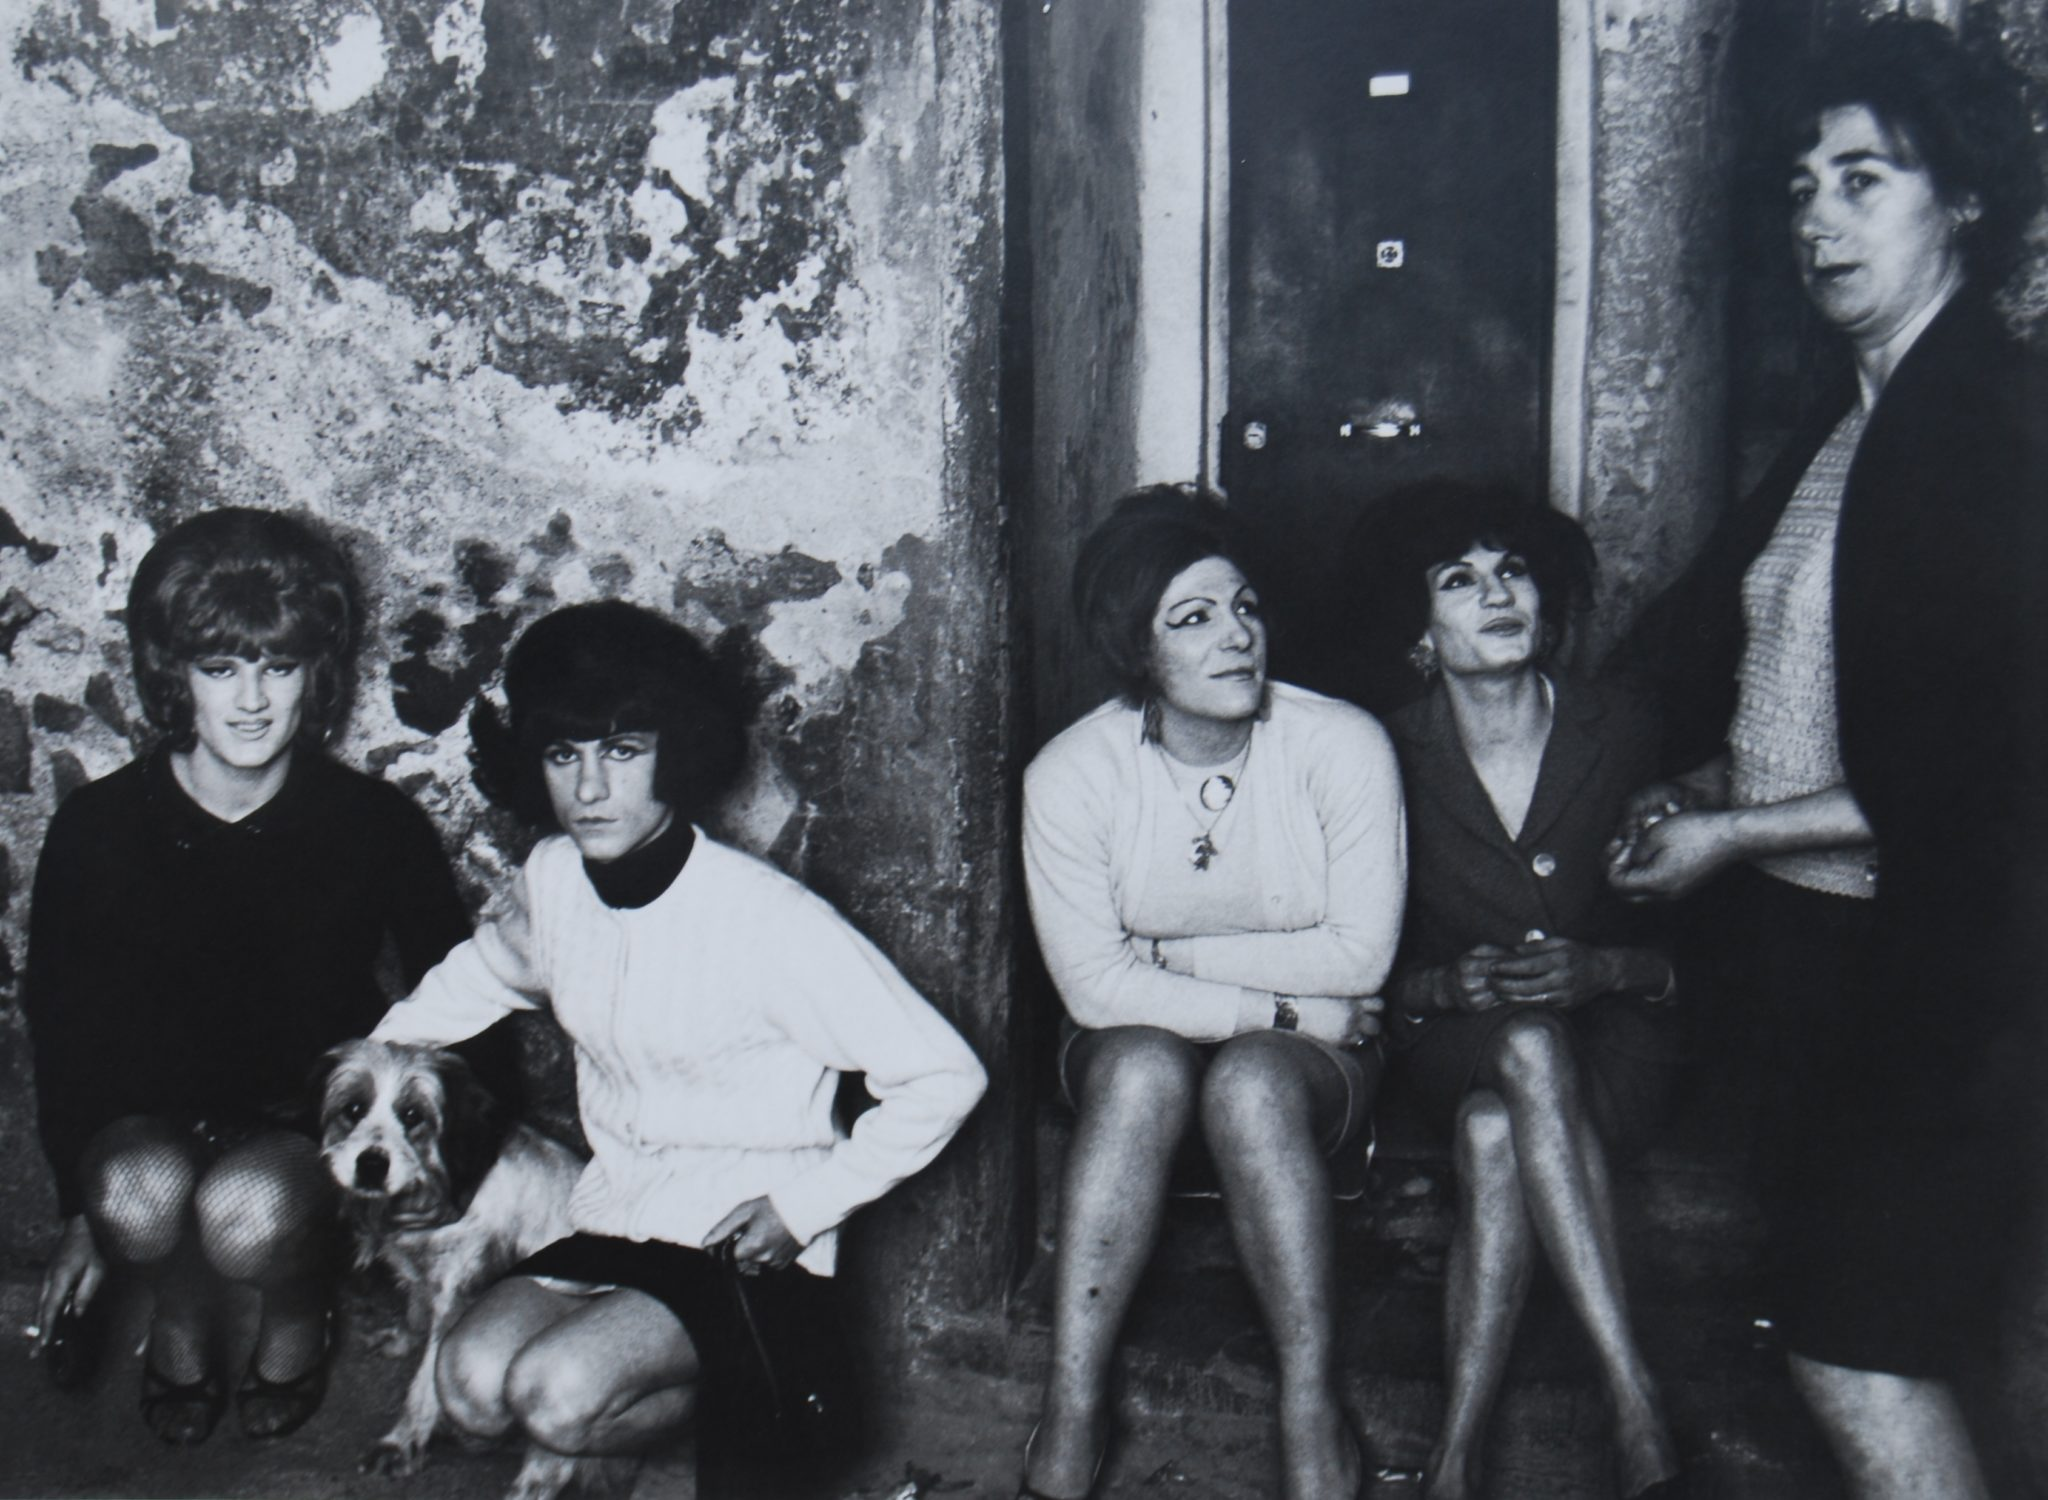 I travestiti, genova, 1965-1971